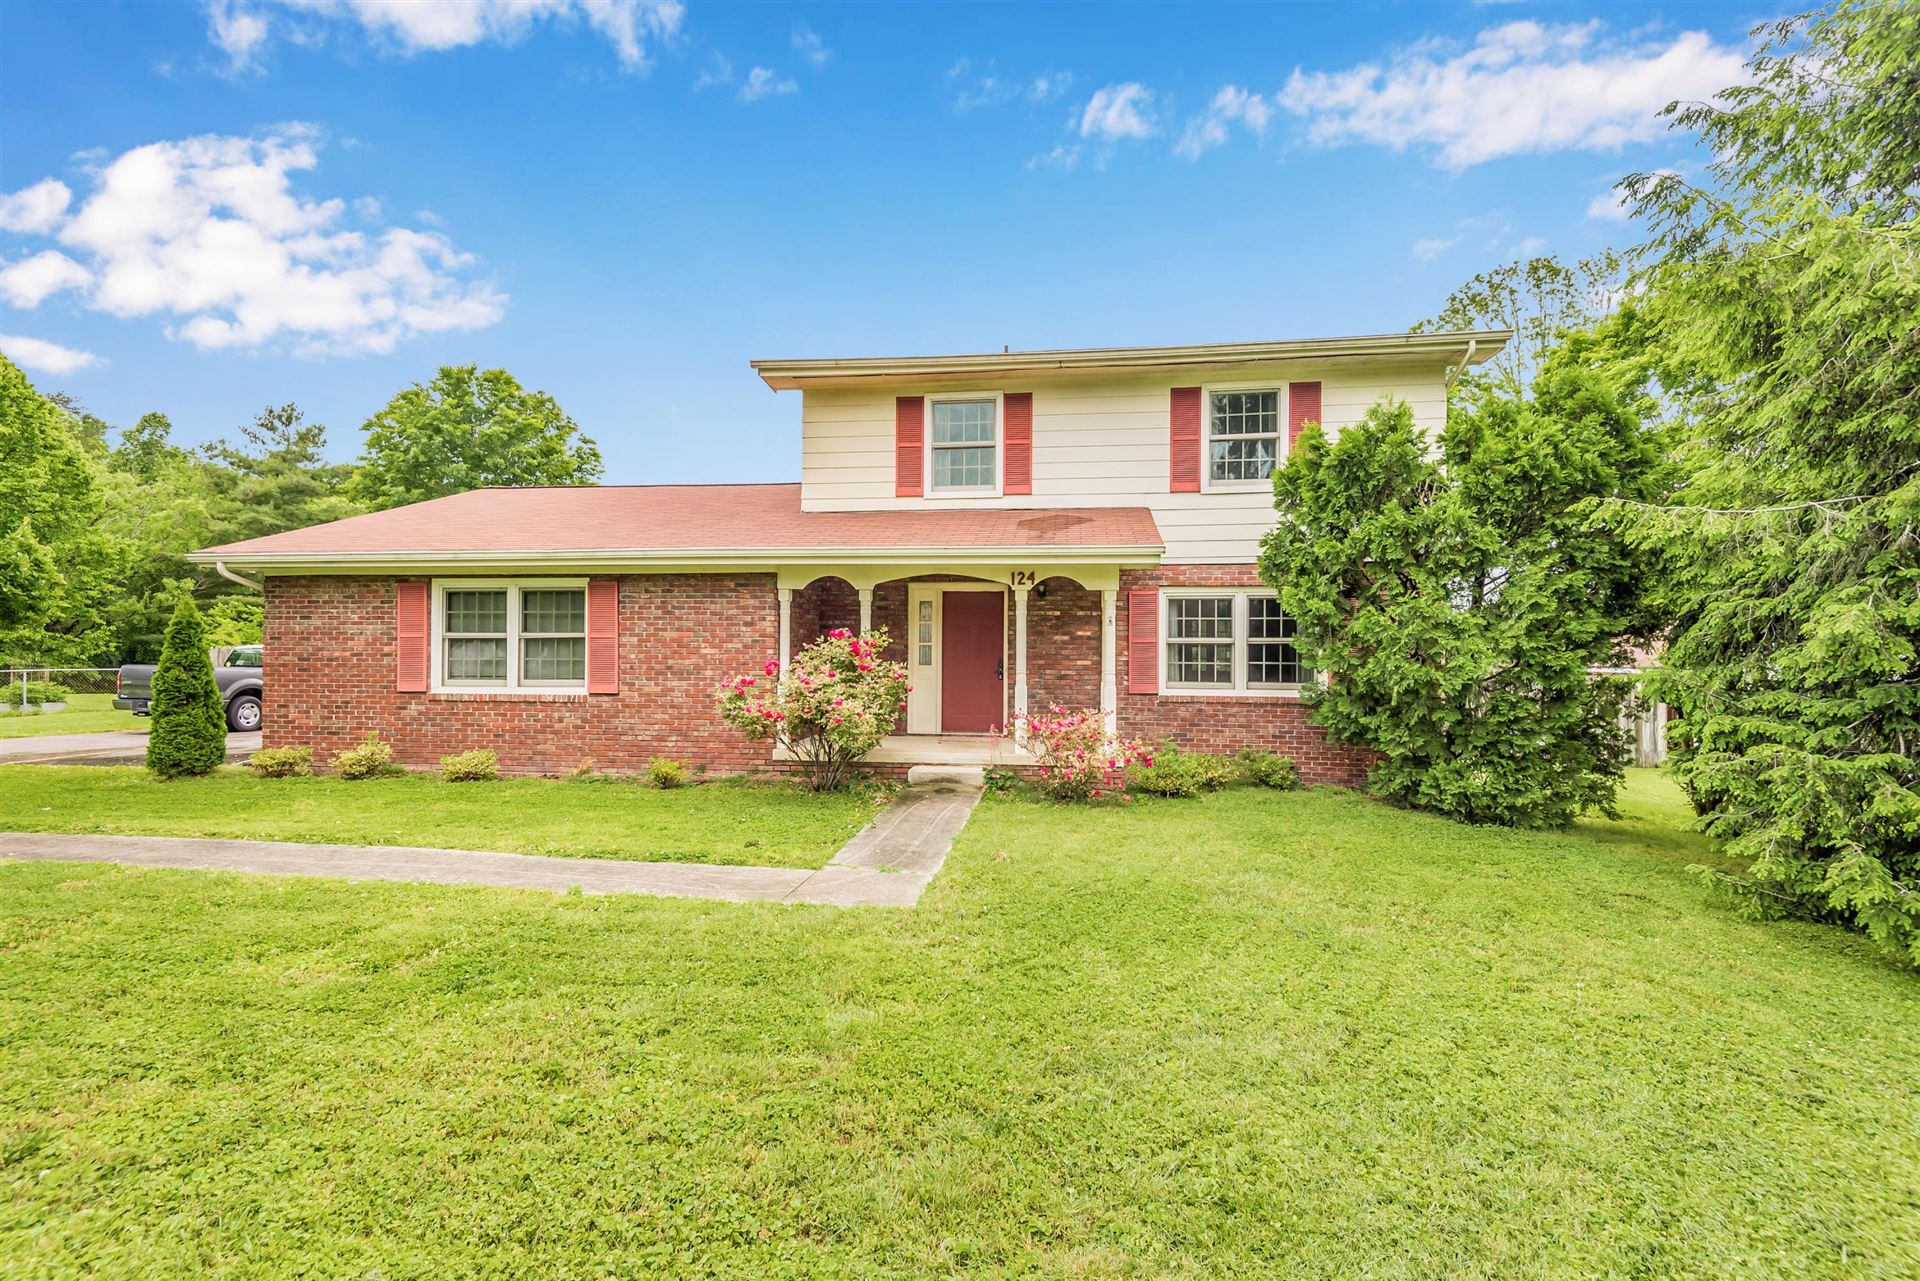 Photo of 124 Clemson Drive, Oak Ridge, TN 37830 (MLS # 1117658)